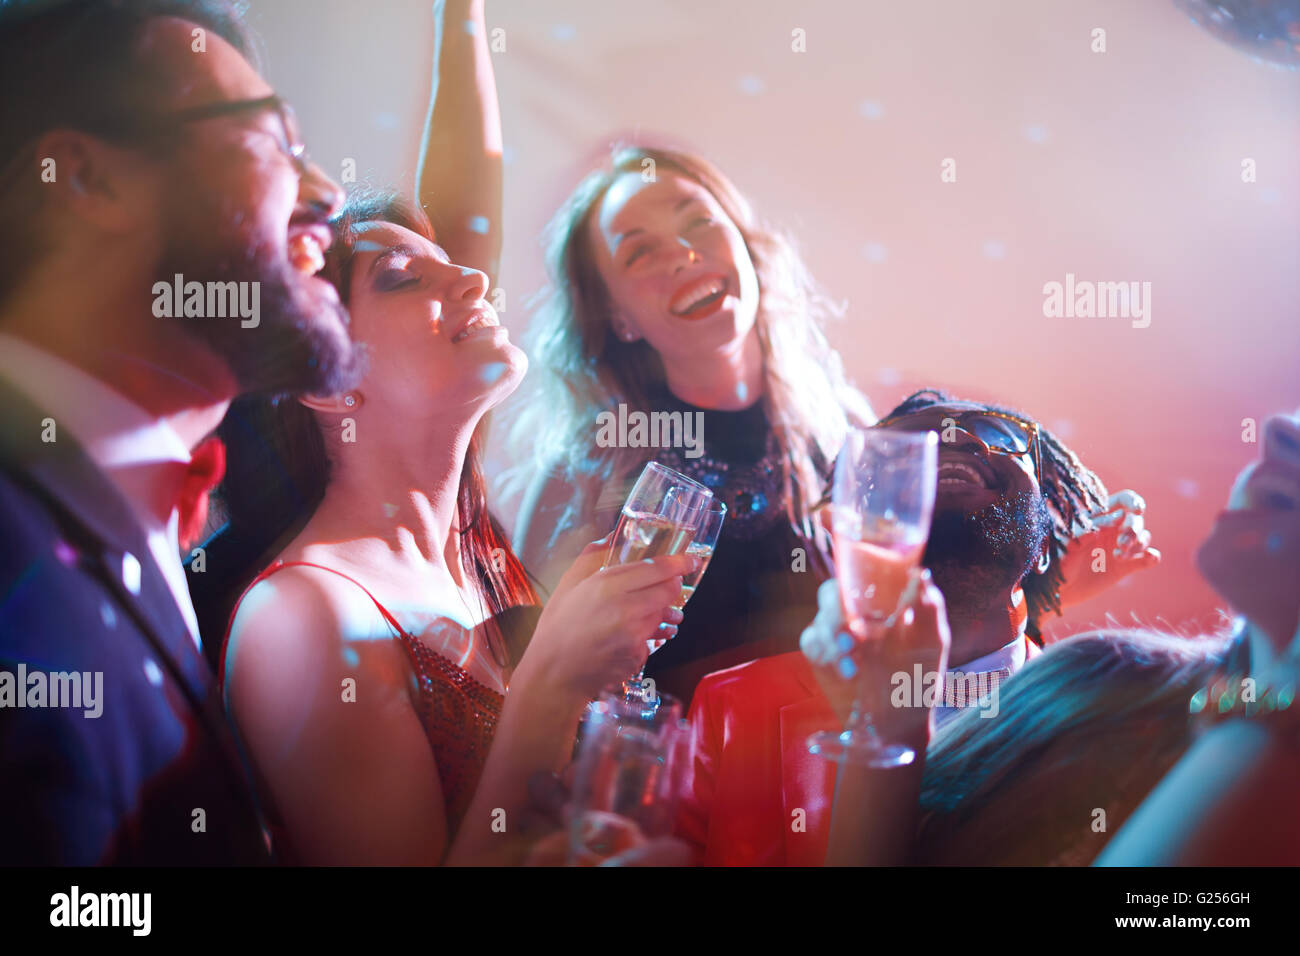 Euphoria of party - Stock Image